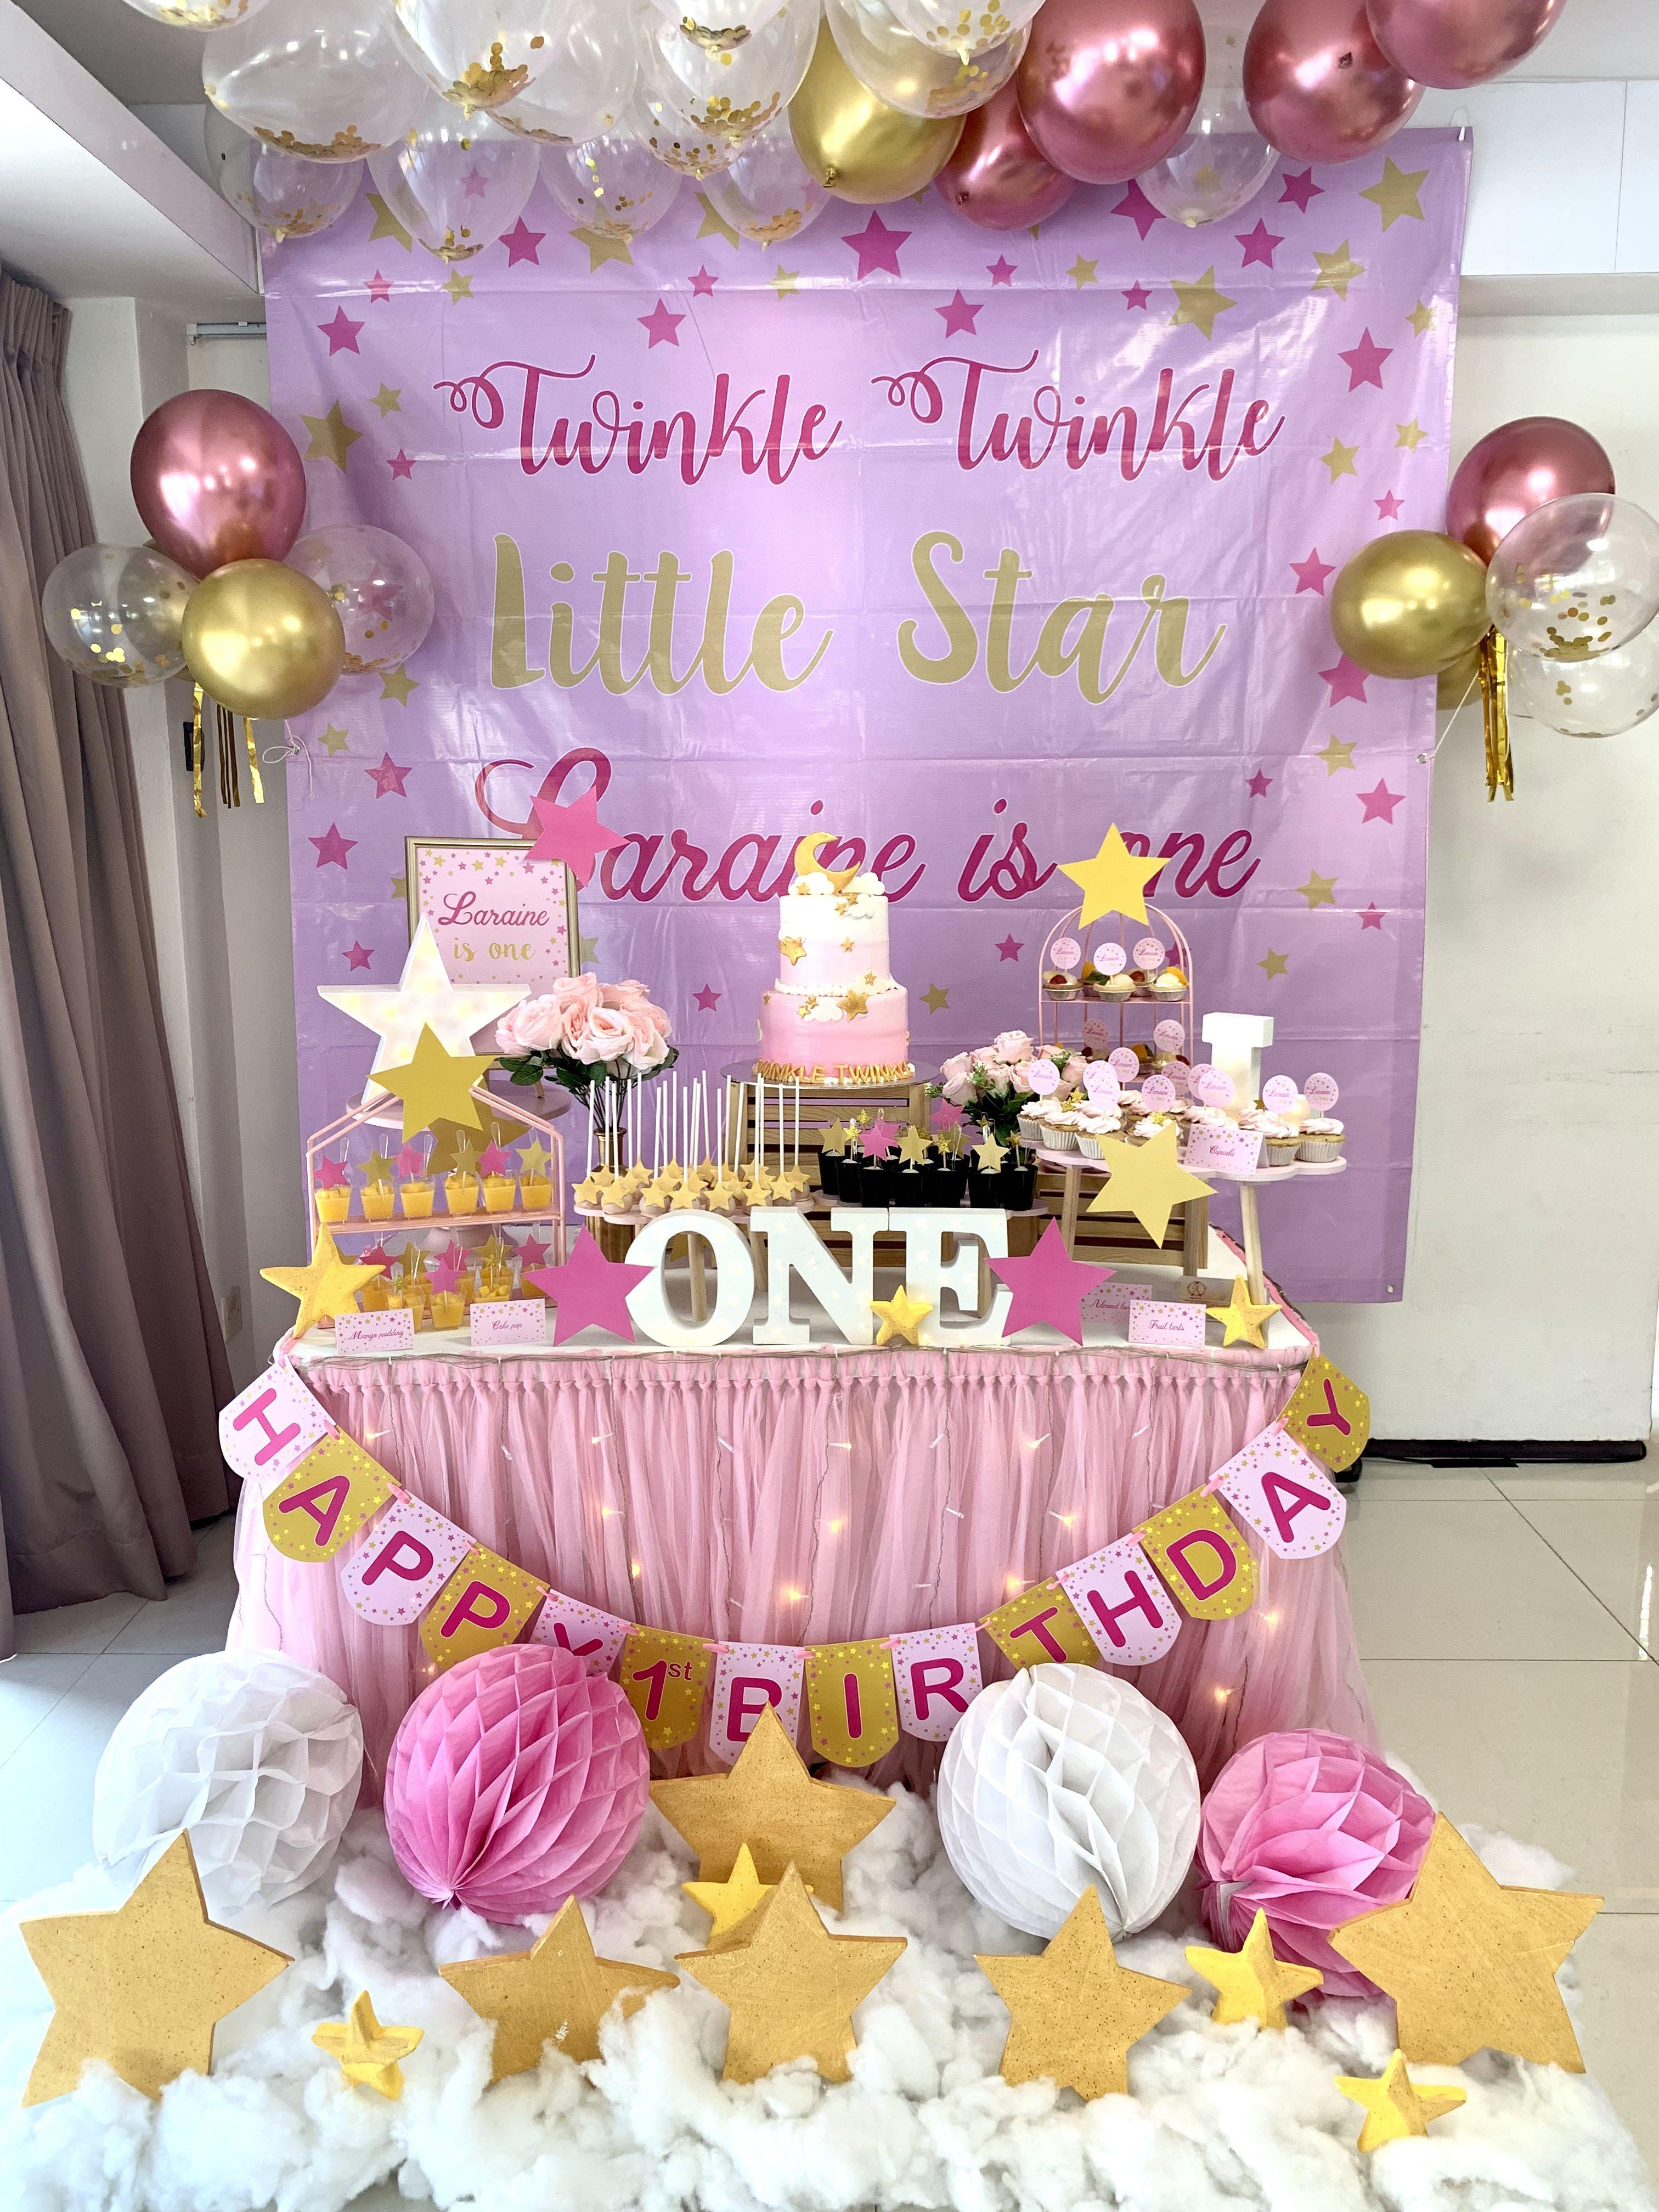 [Promo] Kids Party- All-in Dessert Table Package ...